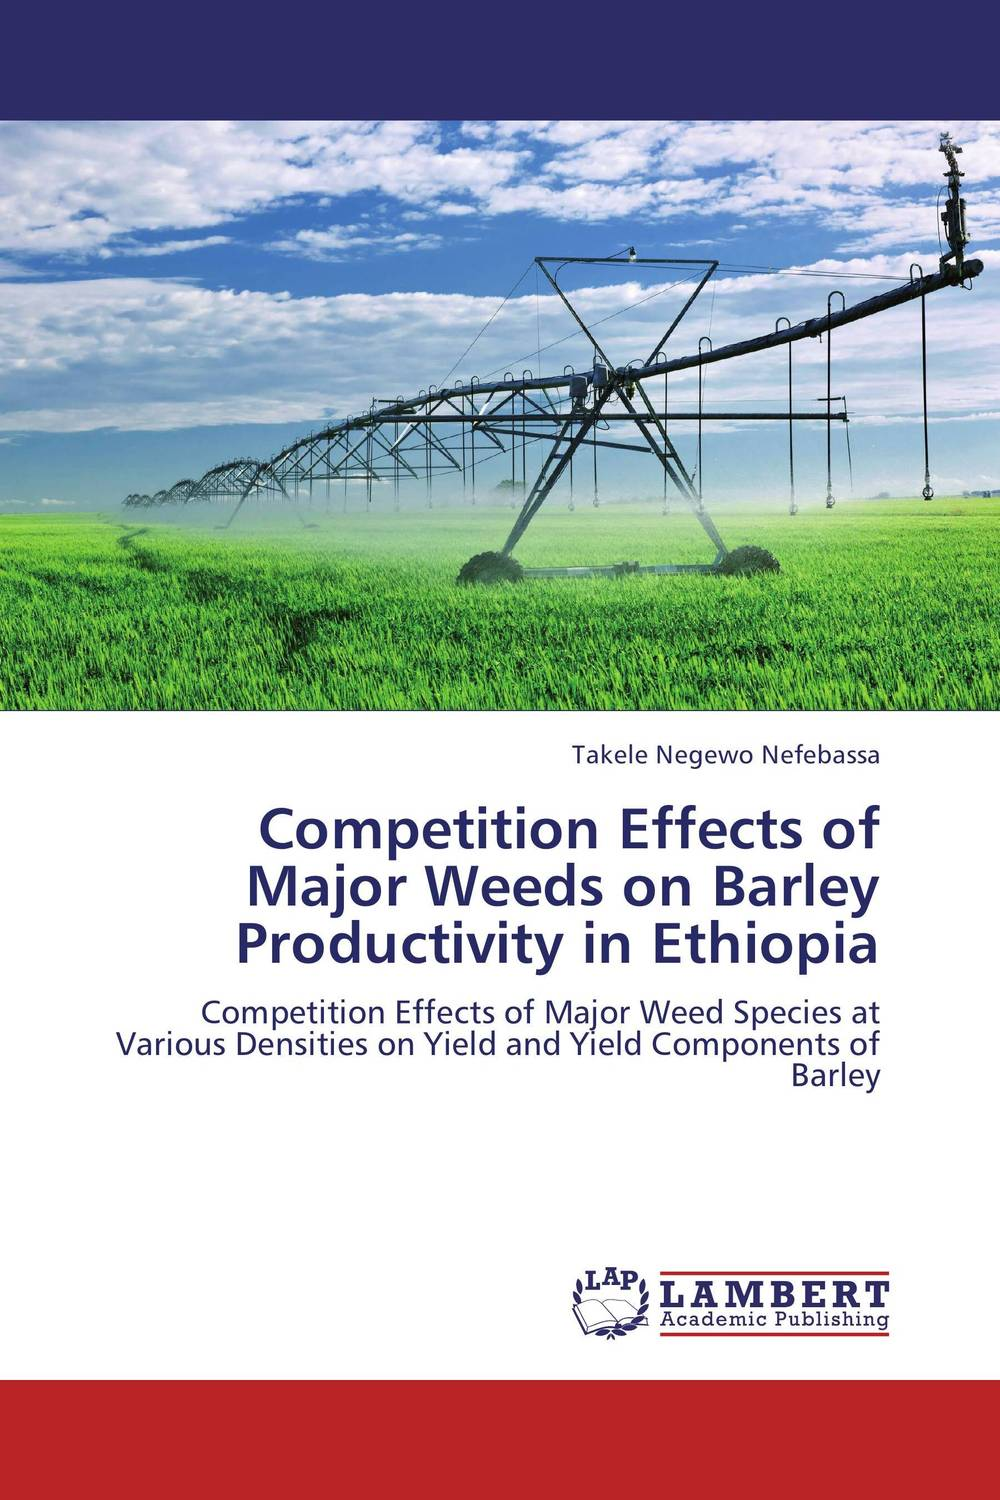 Competition Effects of Major Weeds on Barley Productivity in Ethiopia butterflies in the barley